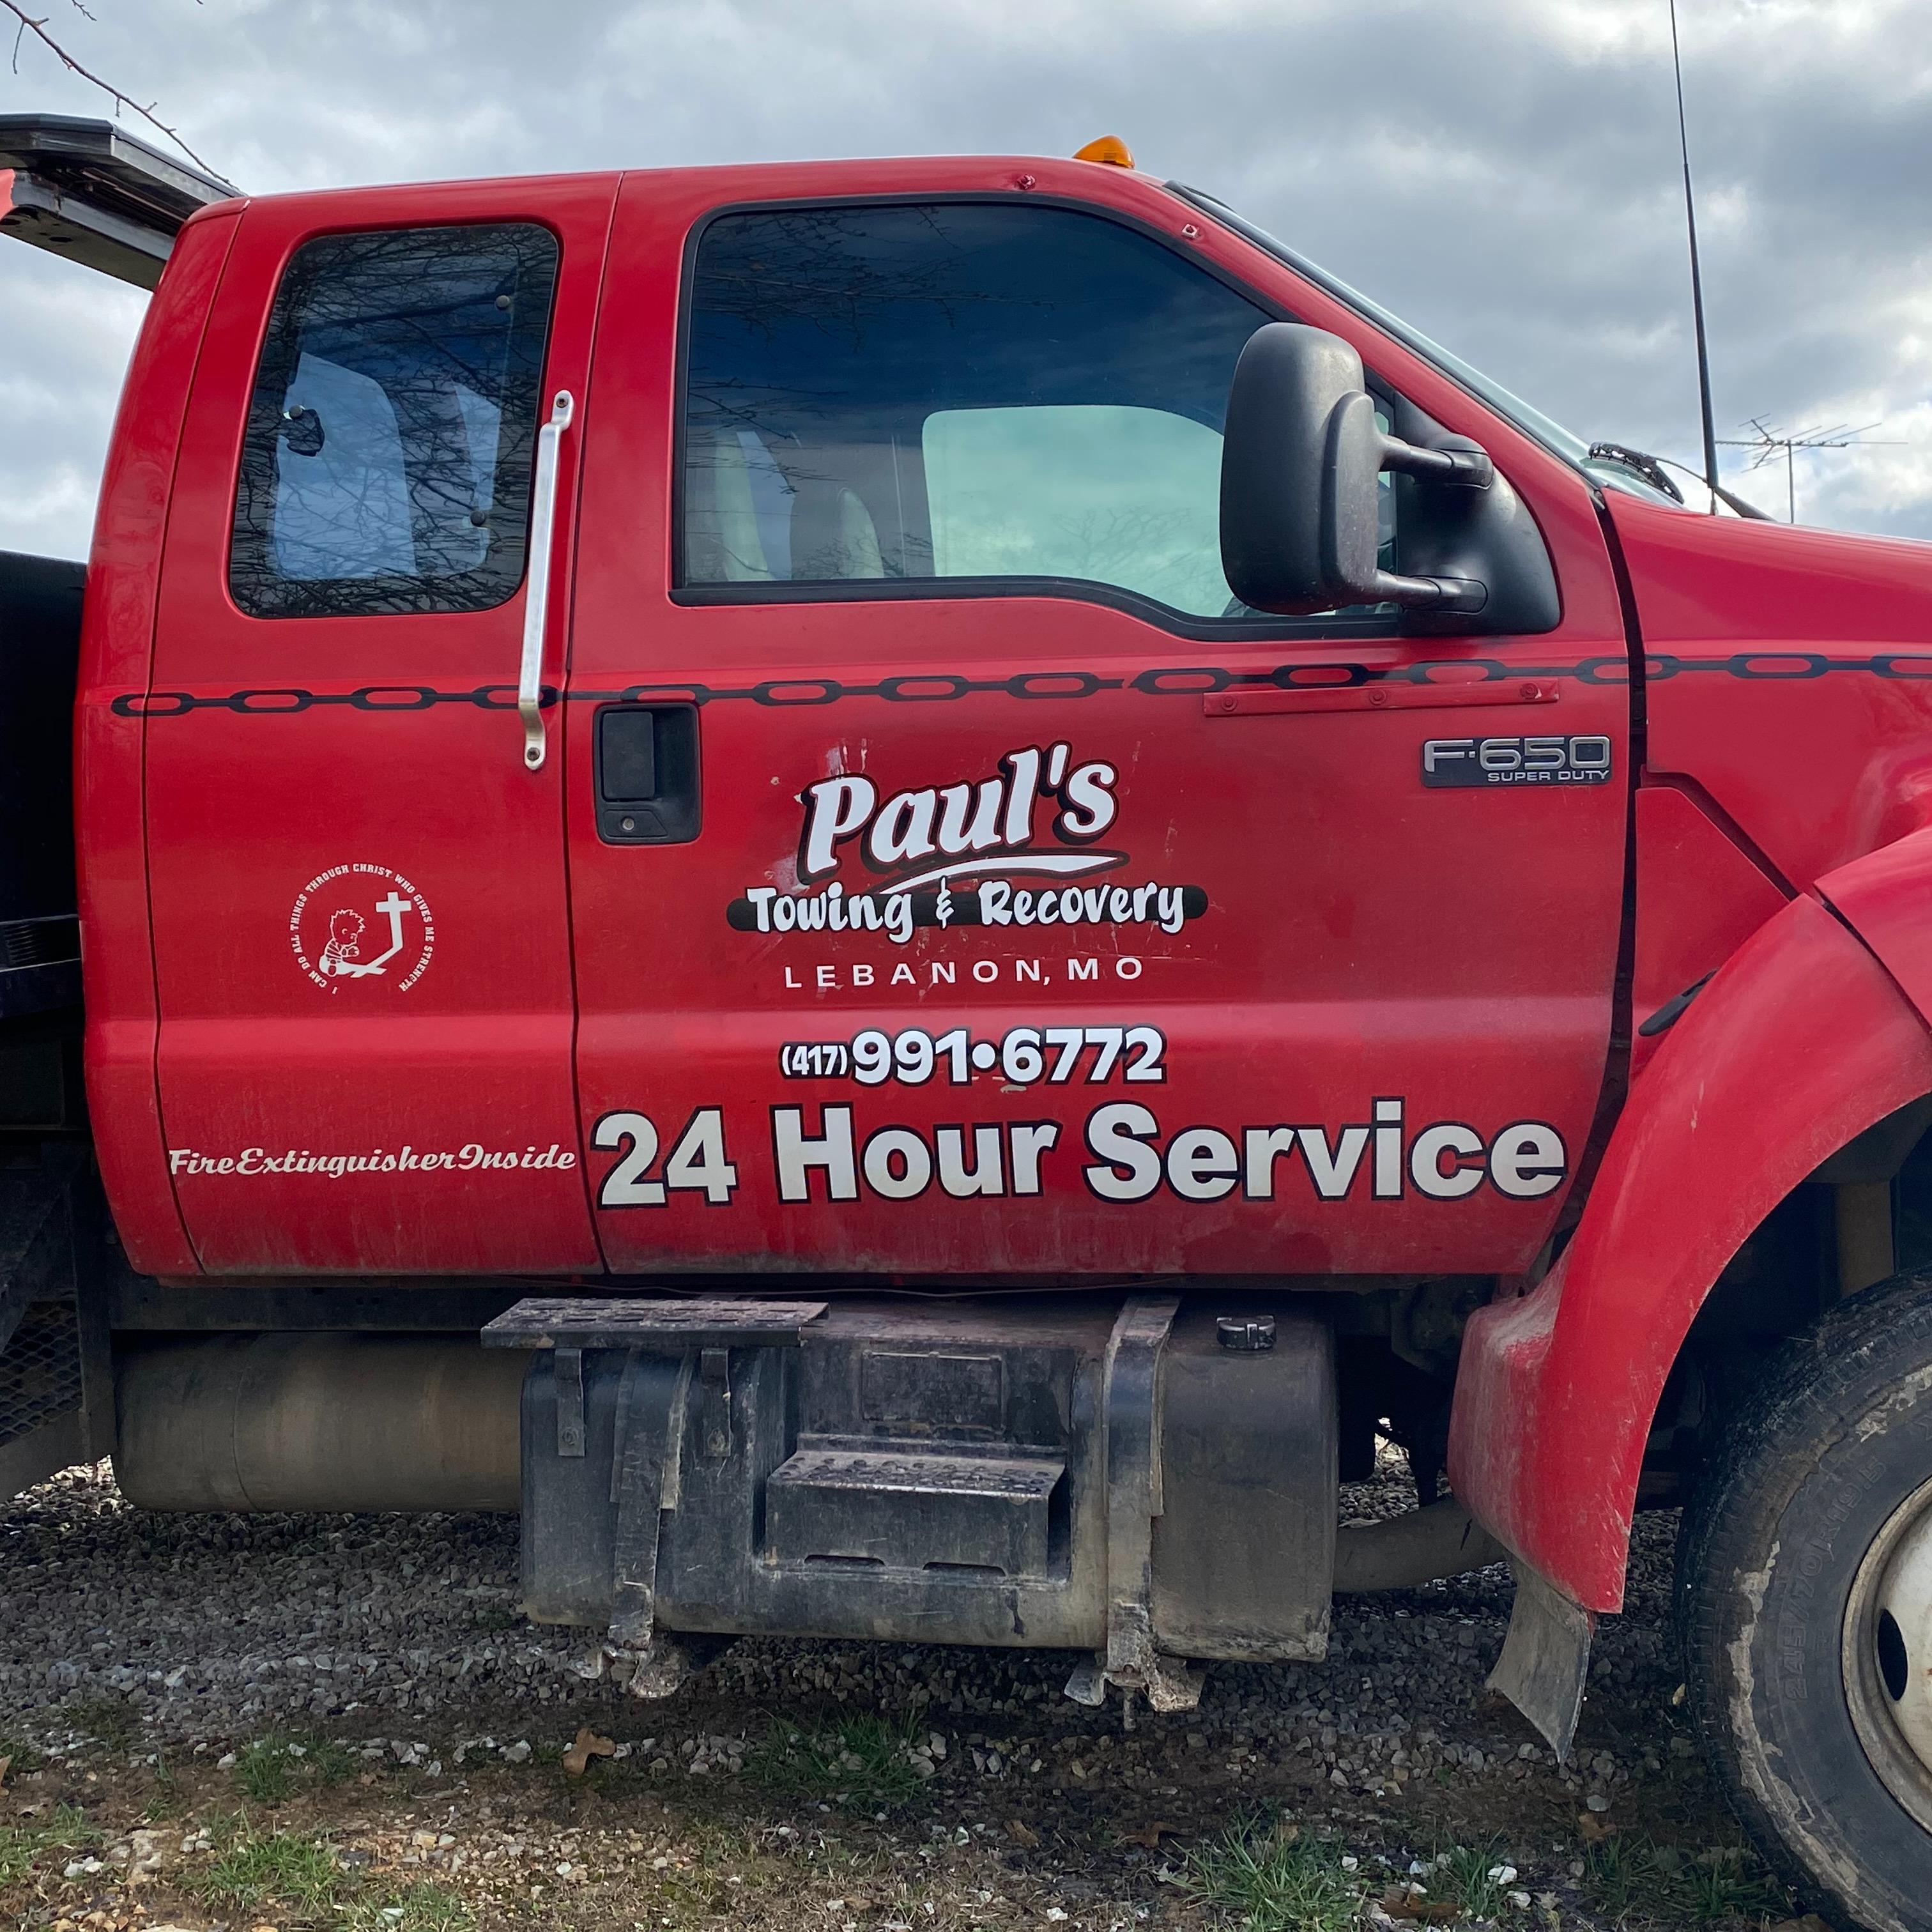 Paul's Towing & Recovery - Lebanon, MO 65536 - (417)991-6772 | ShowMeLocal.com